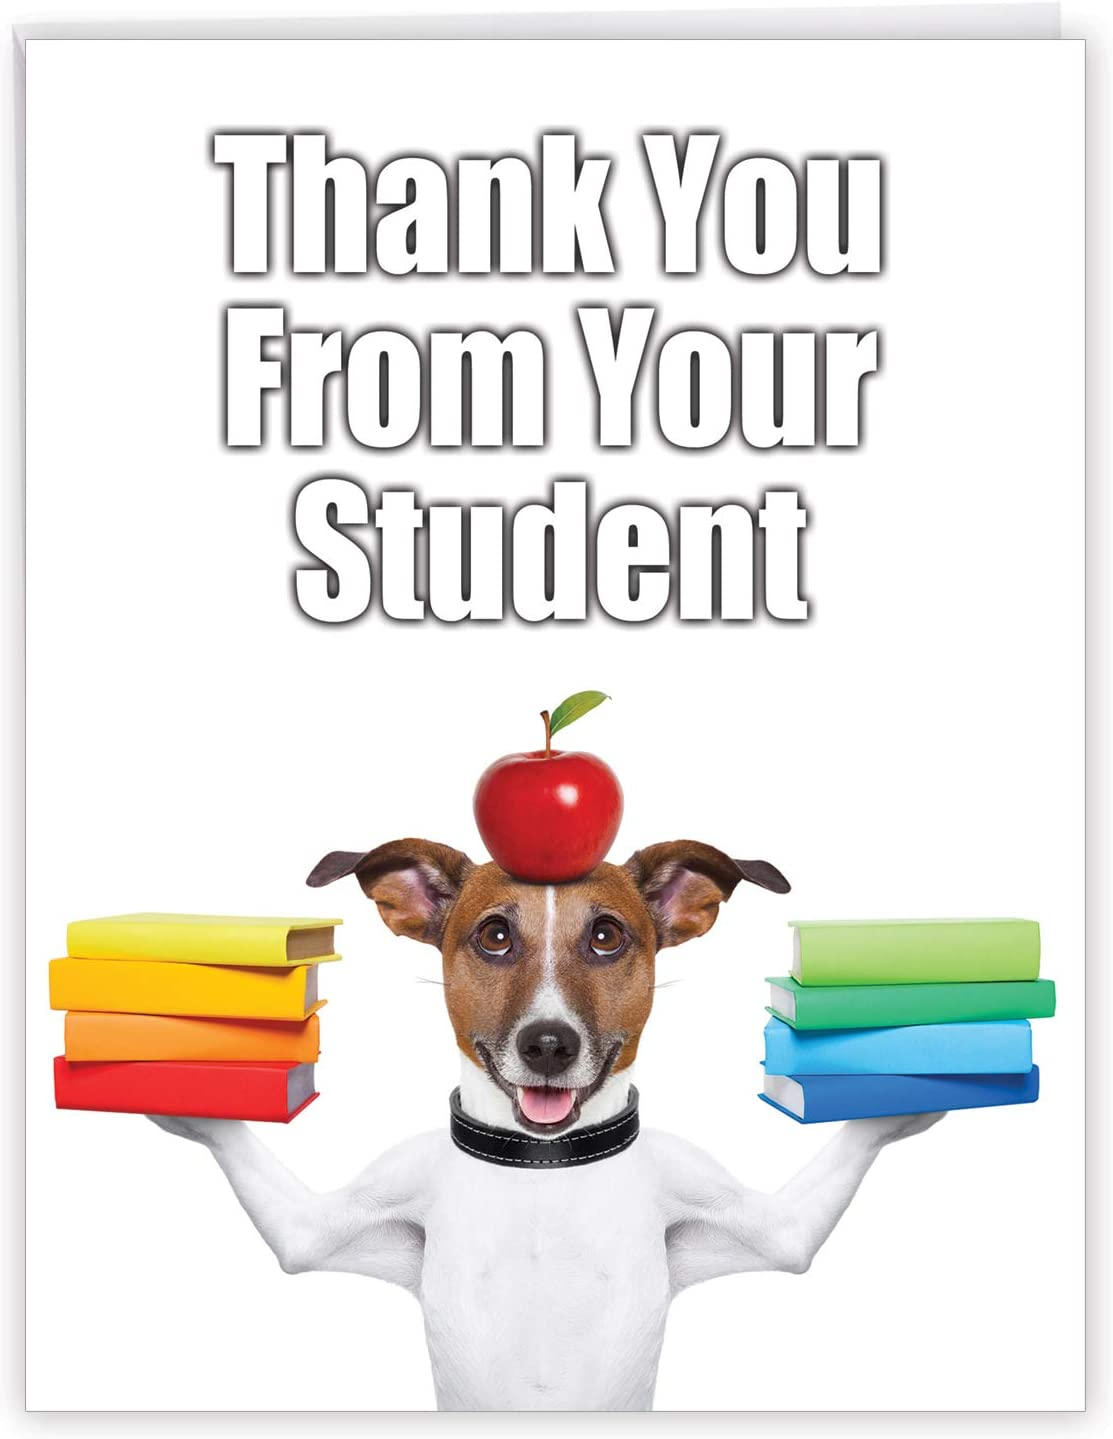 Jumbo Funny Thank You Gift Card: Thank You from Your Student or Class with Dog and Apple (Extra Large Version: 8.5 x 11 with White Envelope) #J3616